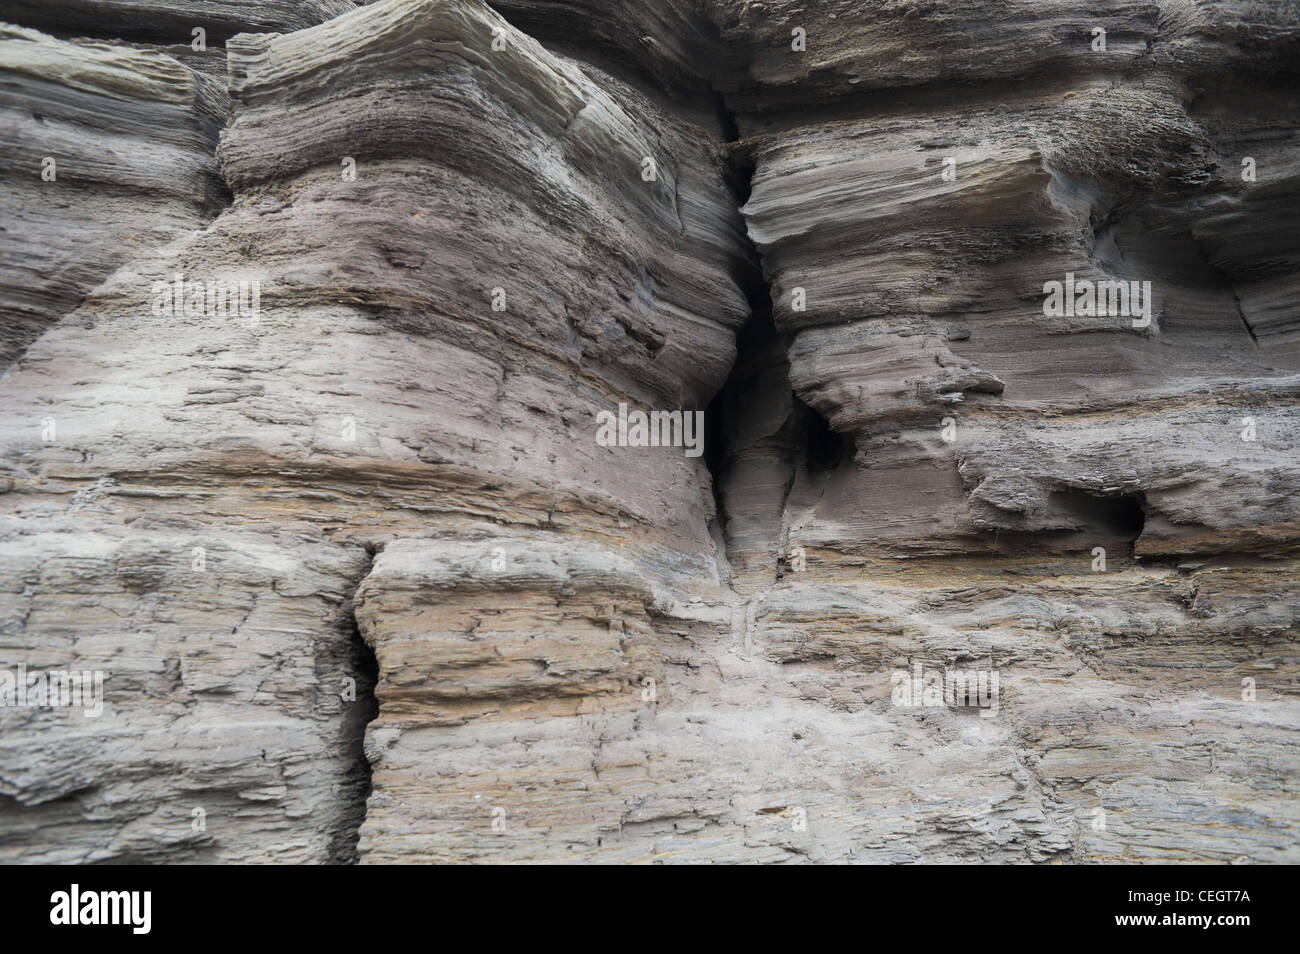 Rock formations along a coastal cliff face in Yorkshire, England. Stock Photo